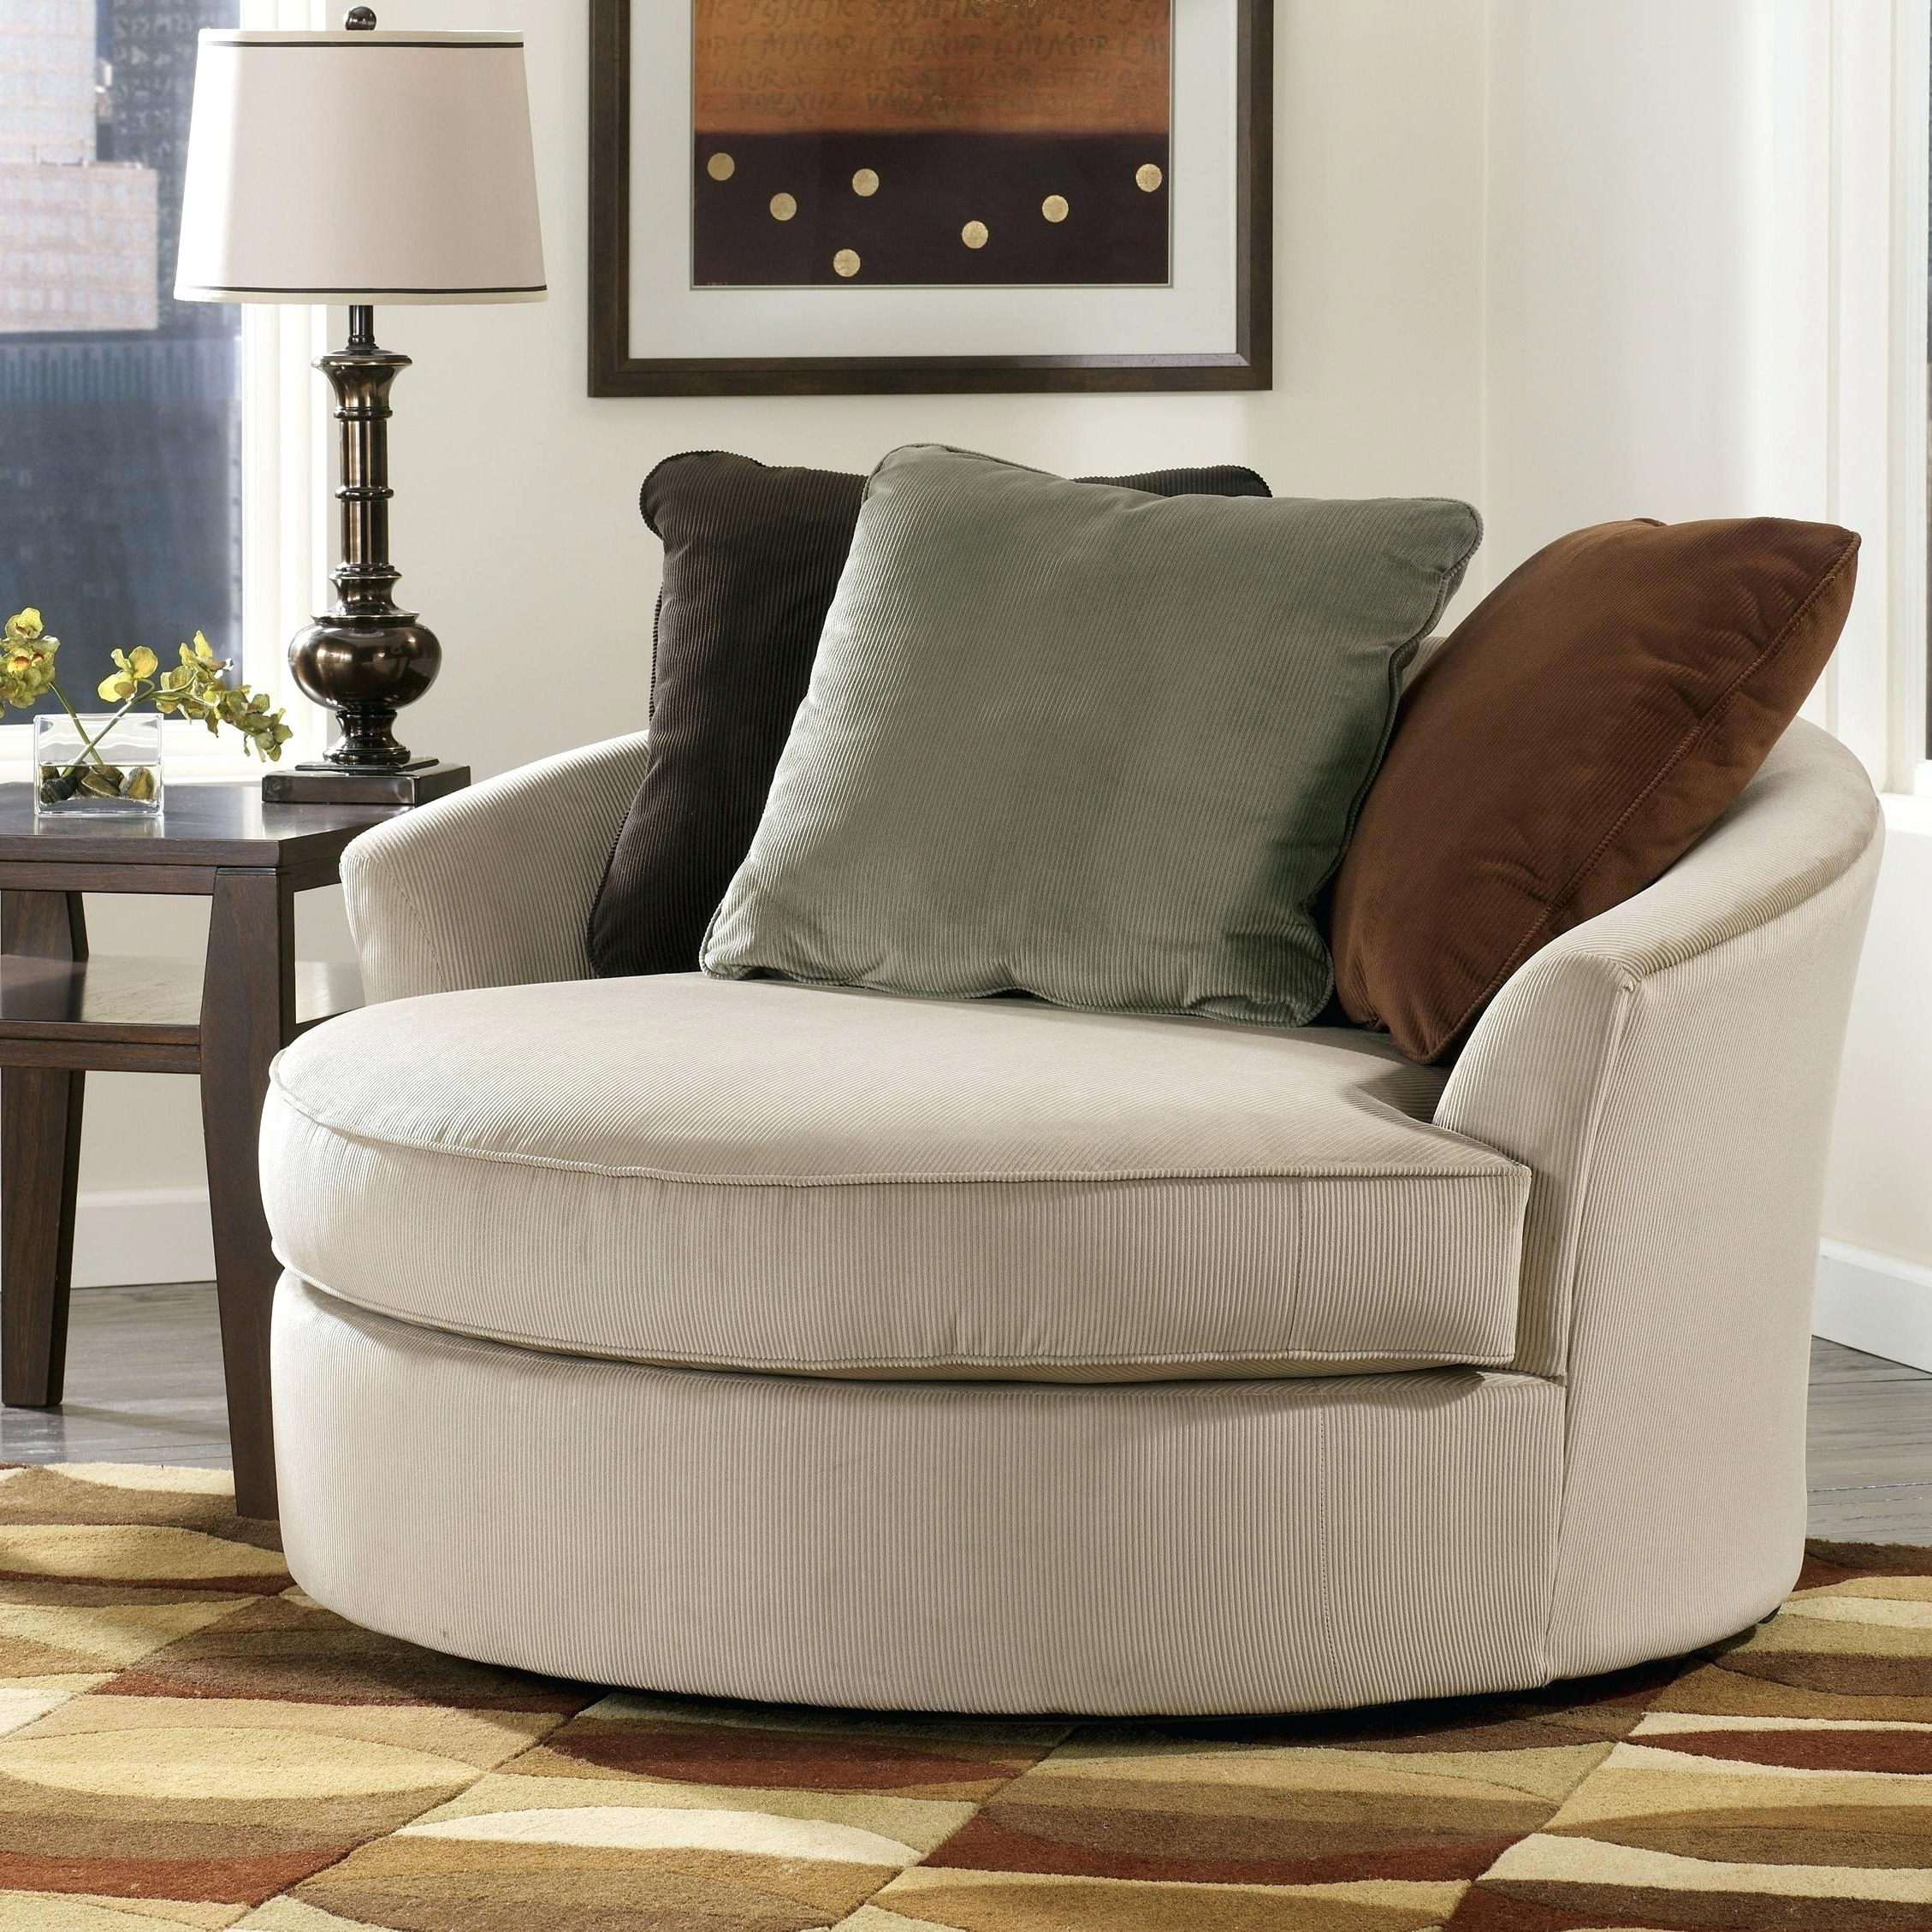 Sofa : Luxury Round Swivel Sofa Chair Latest Large With Crescent With Most  Current Swivel Sofa